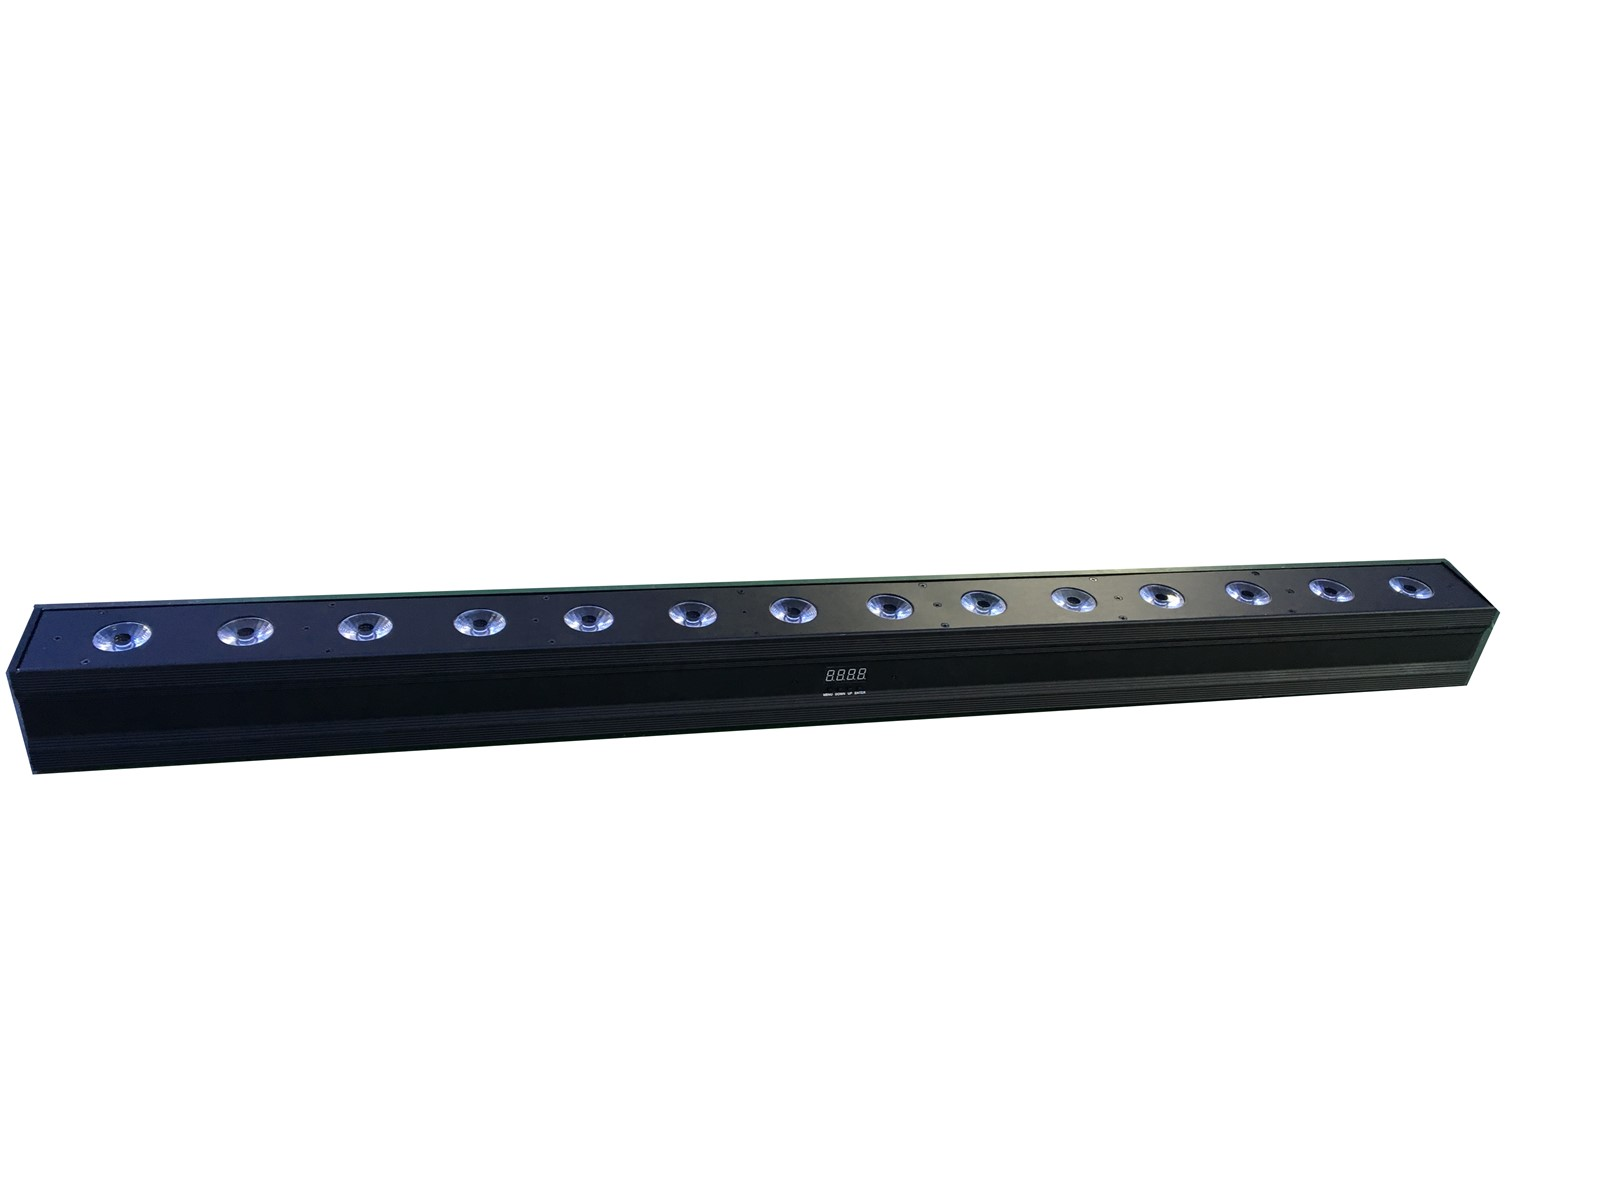 Rion Rasha New Arrival LED Wall Washer Light 14*12w 6in1 RGBAW UV LED Wall Light